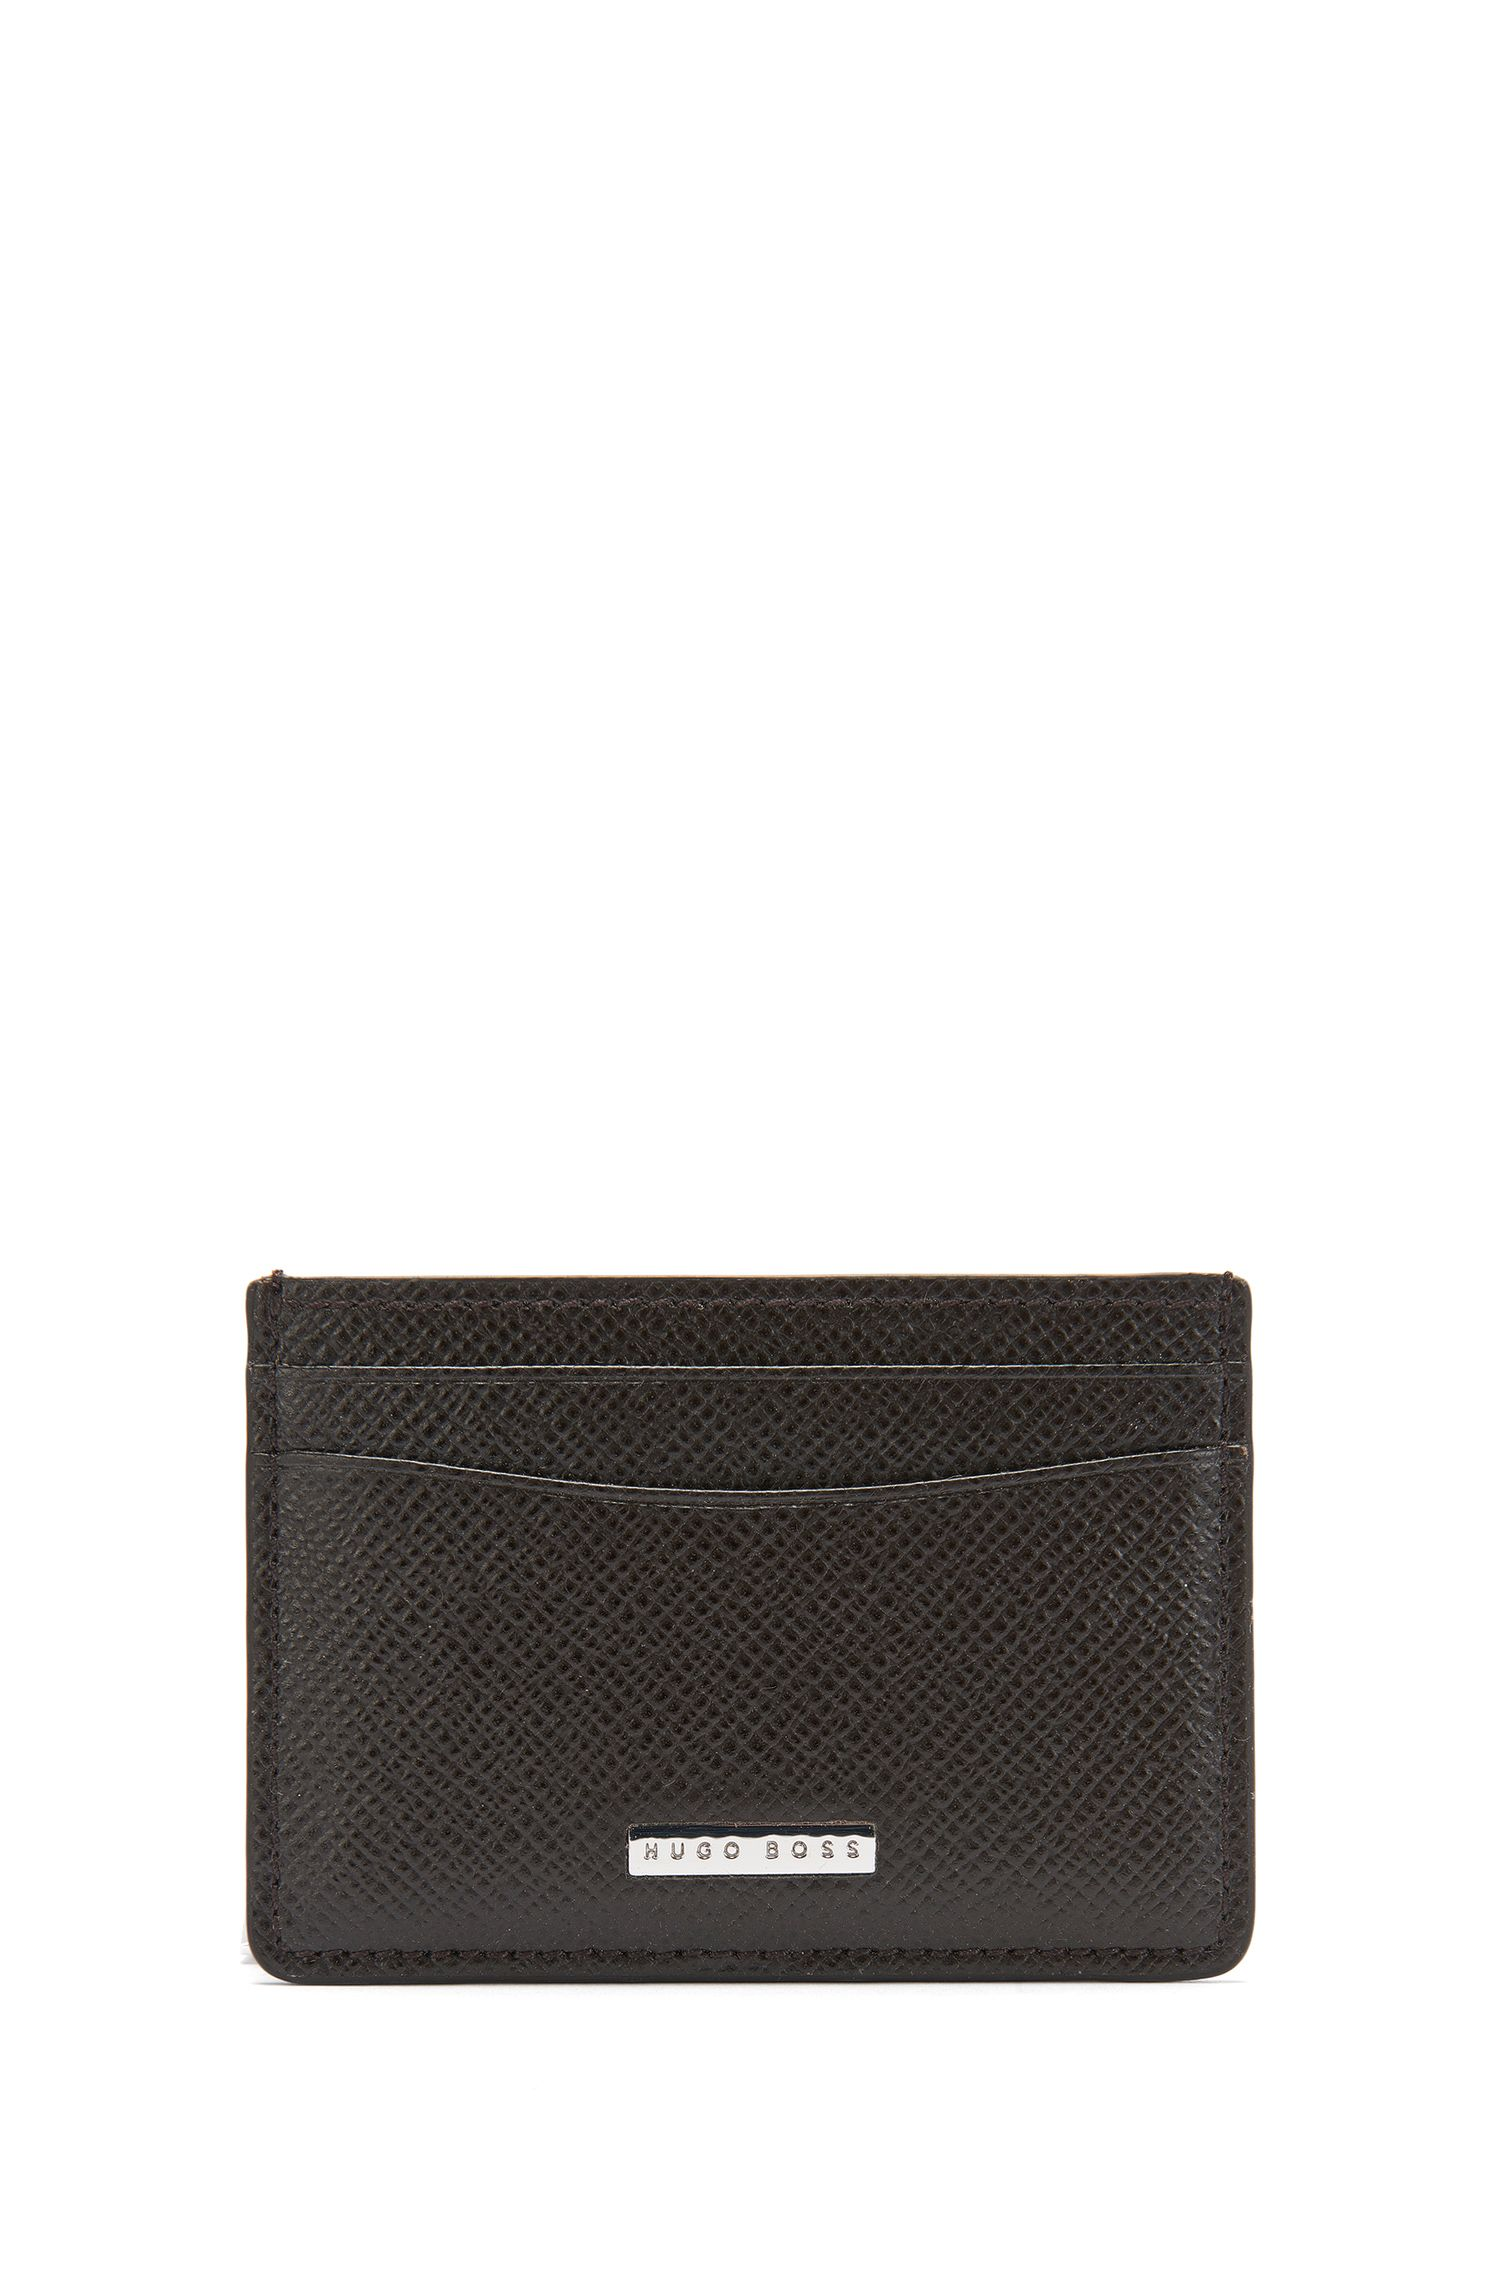 Signature Collection card holder in grained palmellato leather